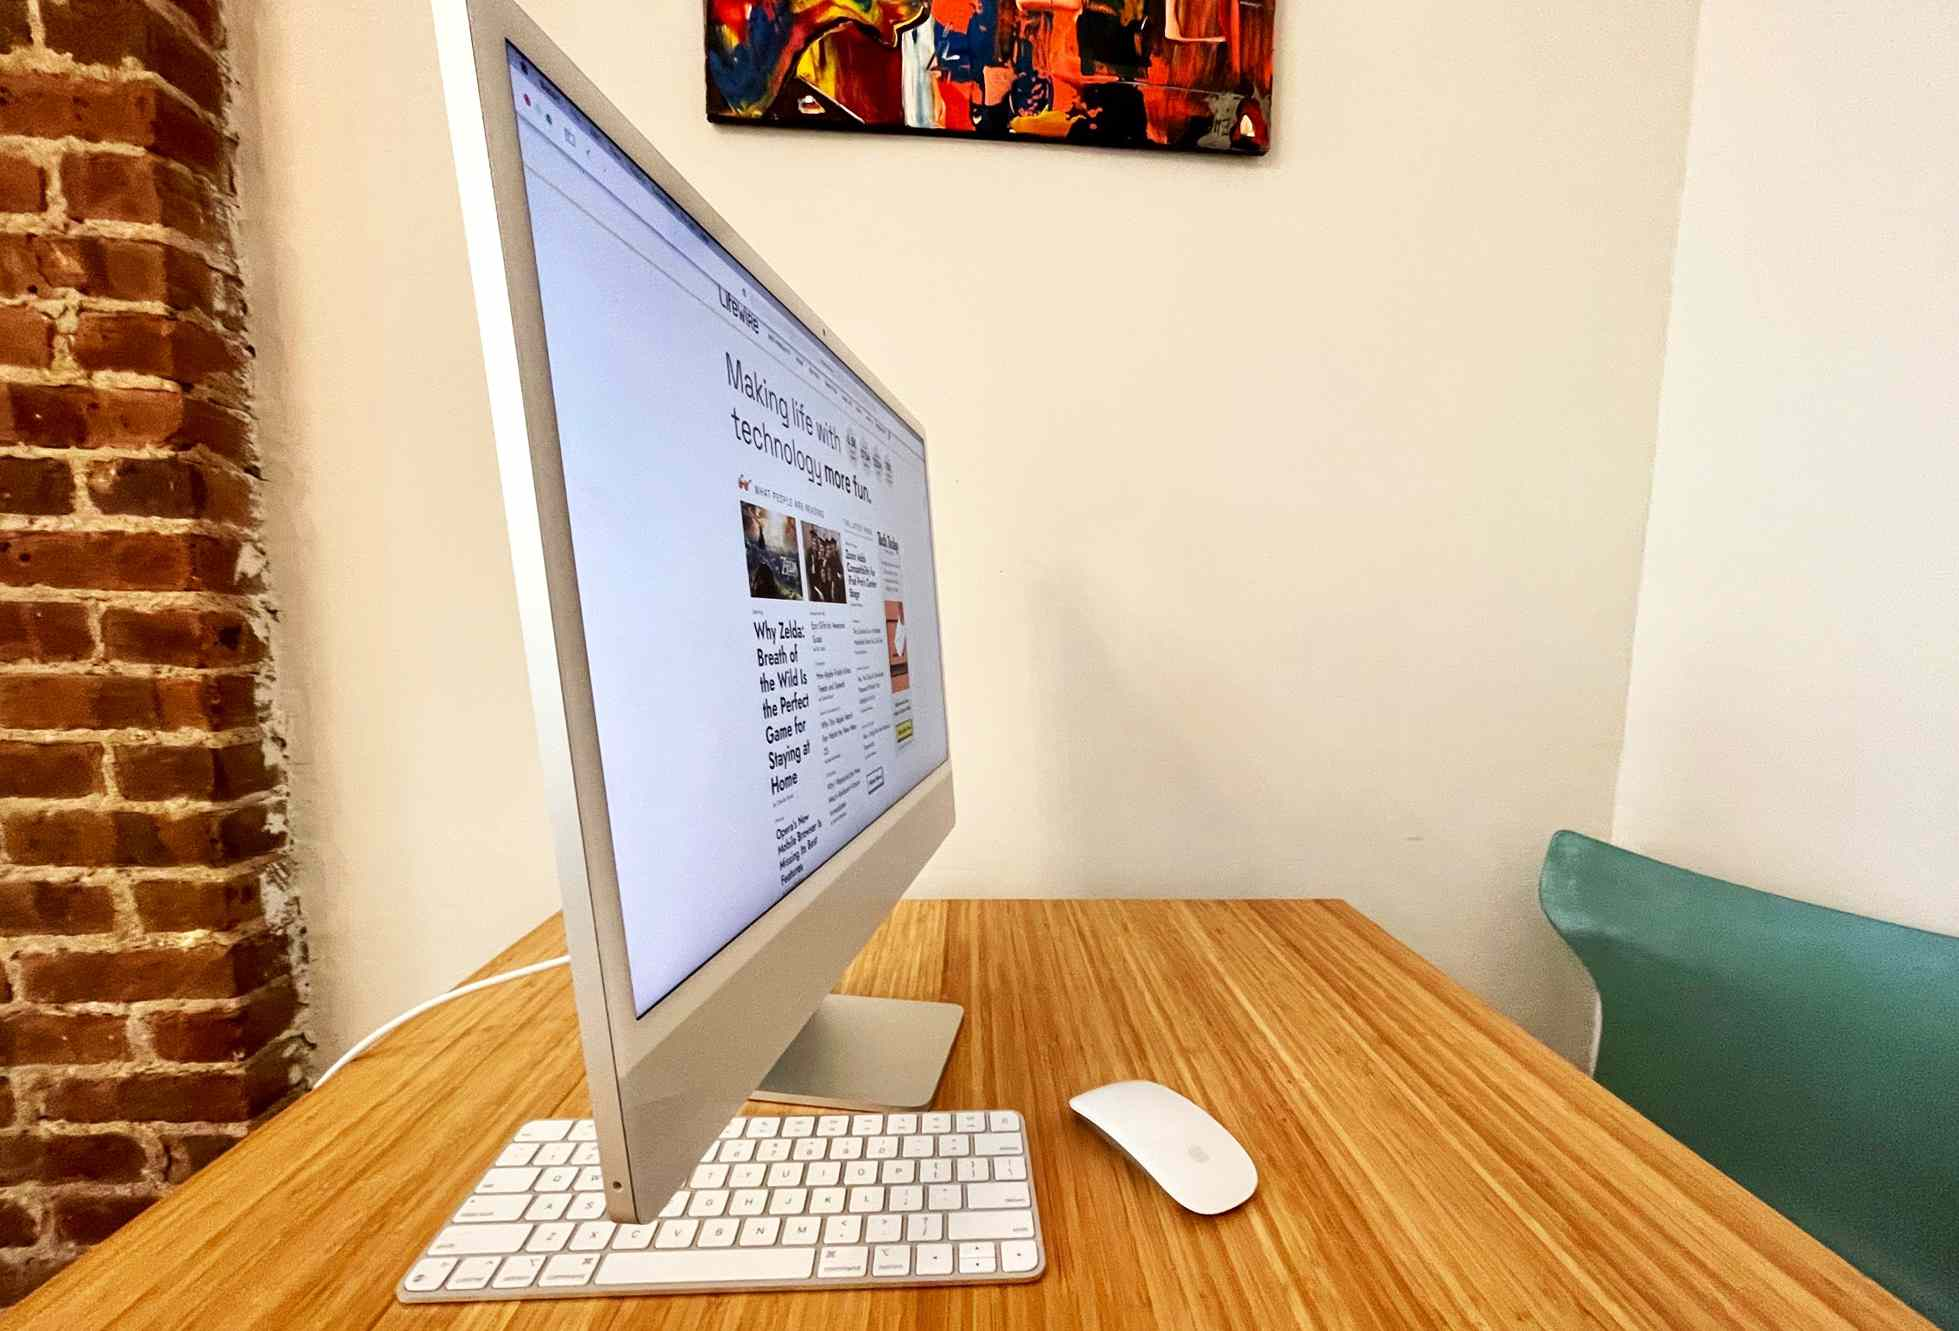 The M1 iMac side view showing how thin the computer is.